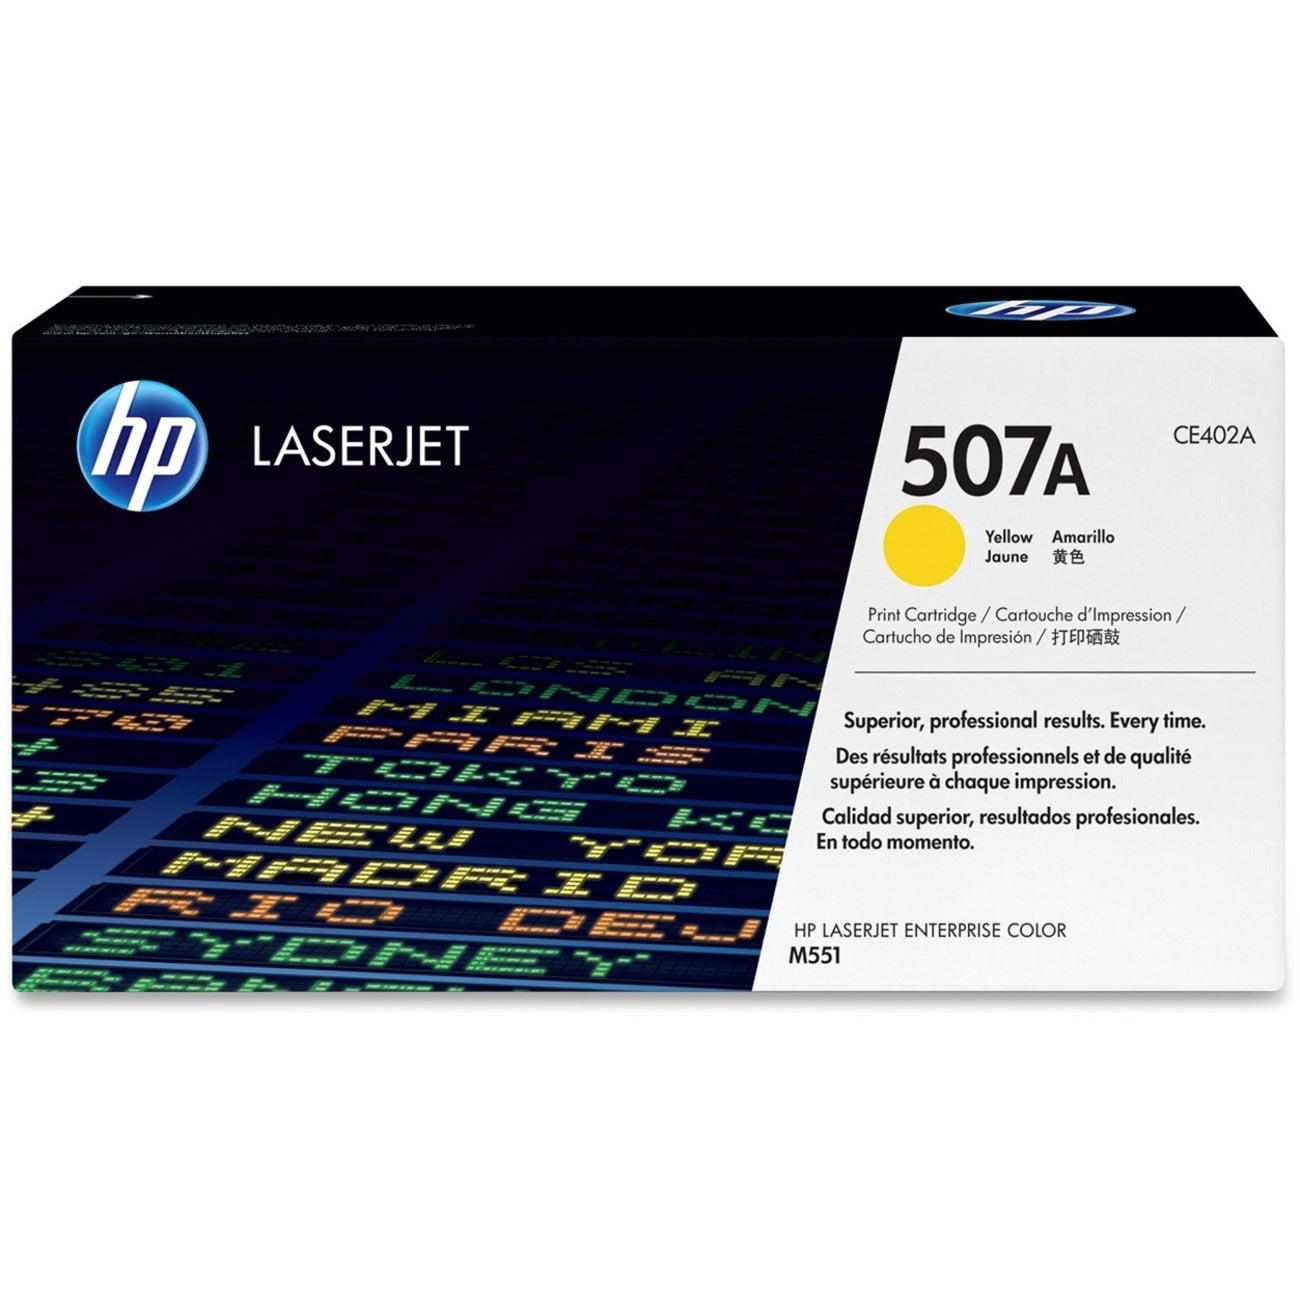 HP 507A Toner Cartridge - Yellow - Thumbnail 0